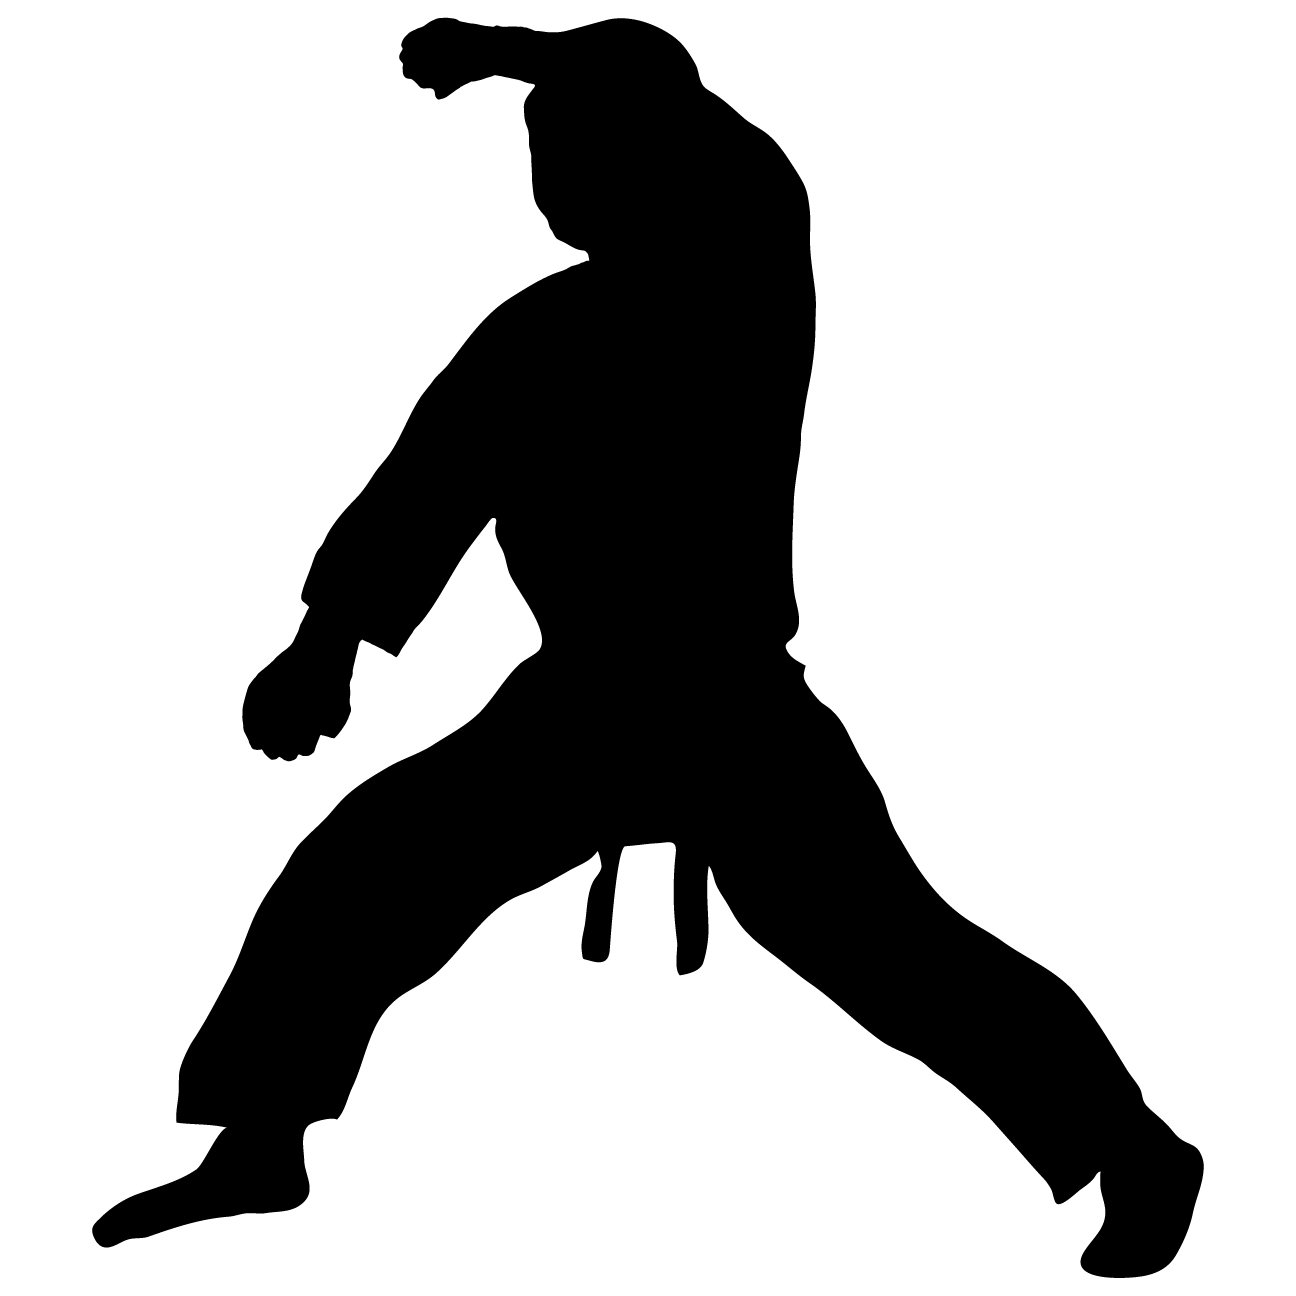 Martial Arts Wall Decal Sticker 18 - Decal Stickers and Mural for Kids Boys Girls Room and Bedroom. Karate Sport Wall Art for Home Decor and Decoration - Martial Art Kung Fu Taekwondo Silhouette Mural